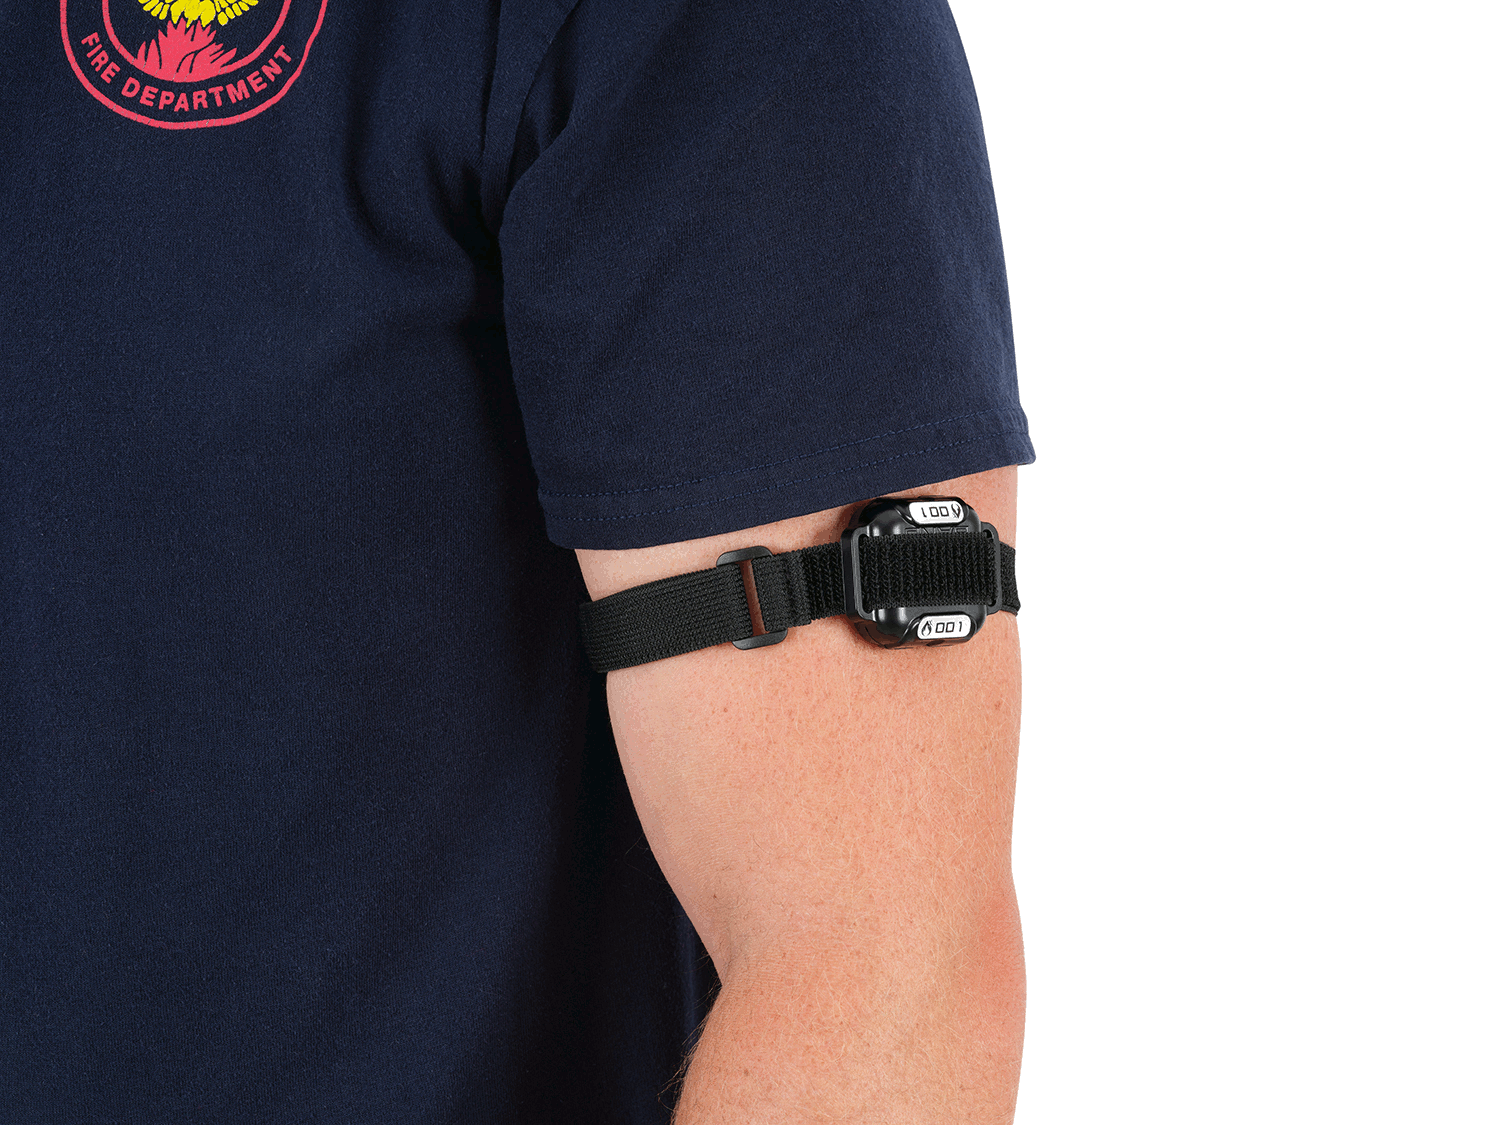 FireHUD Band worn correctly on the upper arm